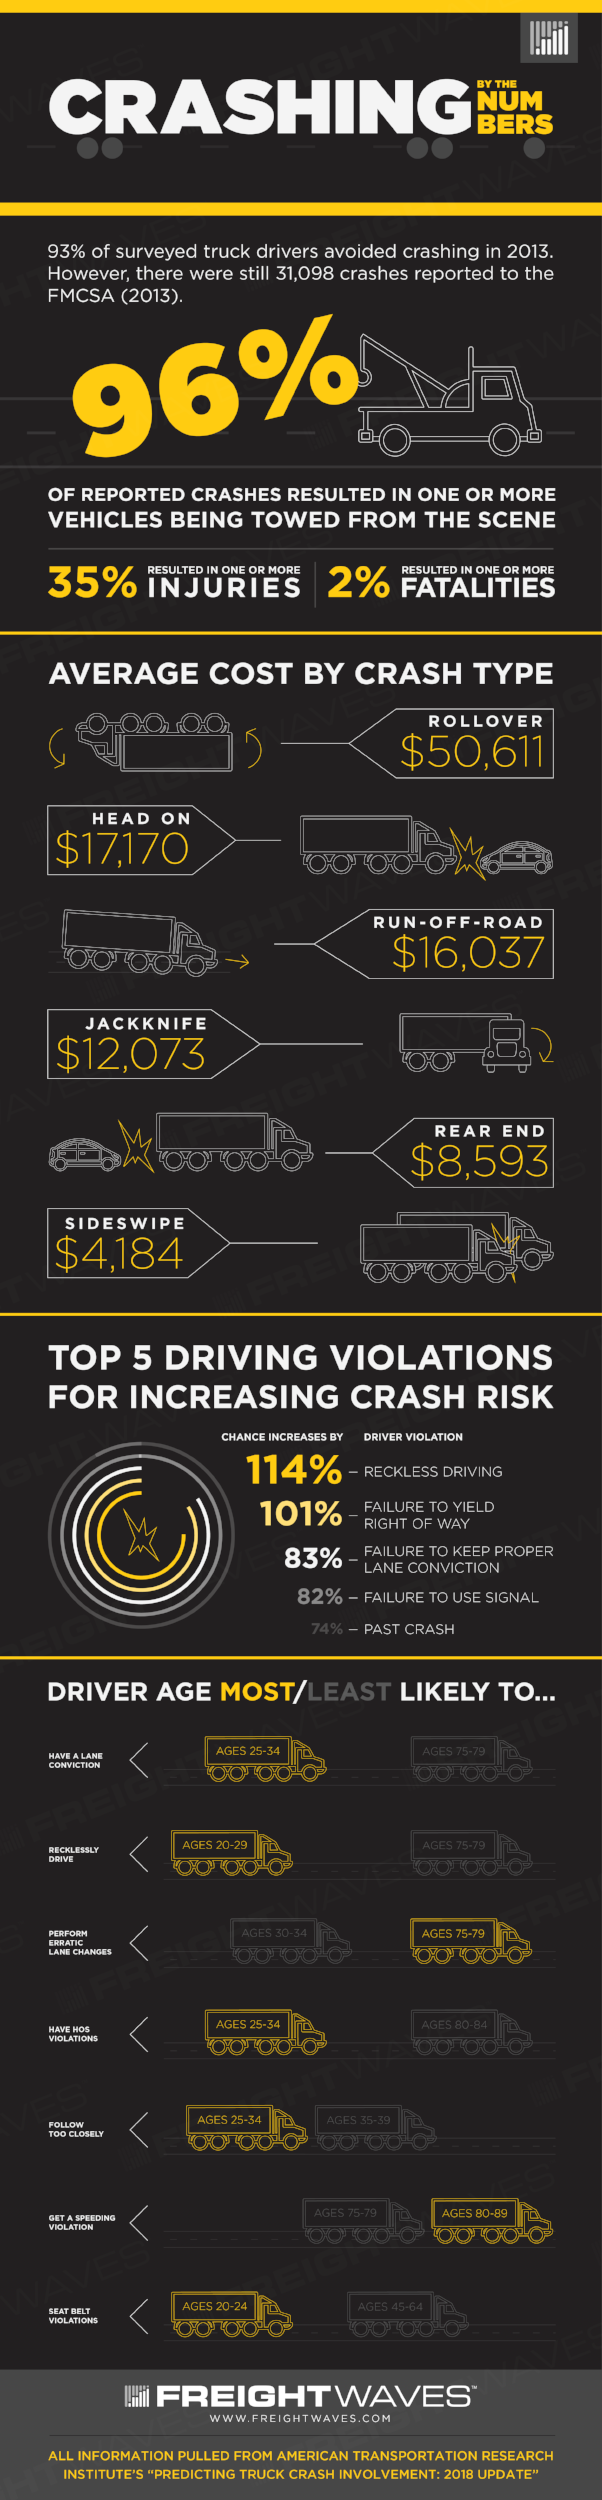 FW-Crash-Infographic.png